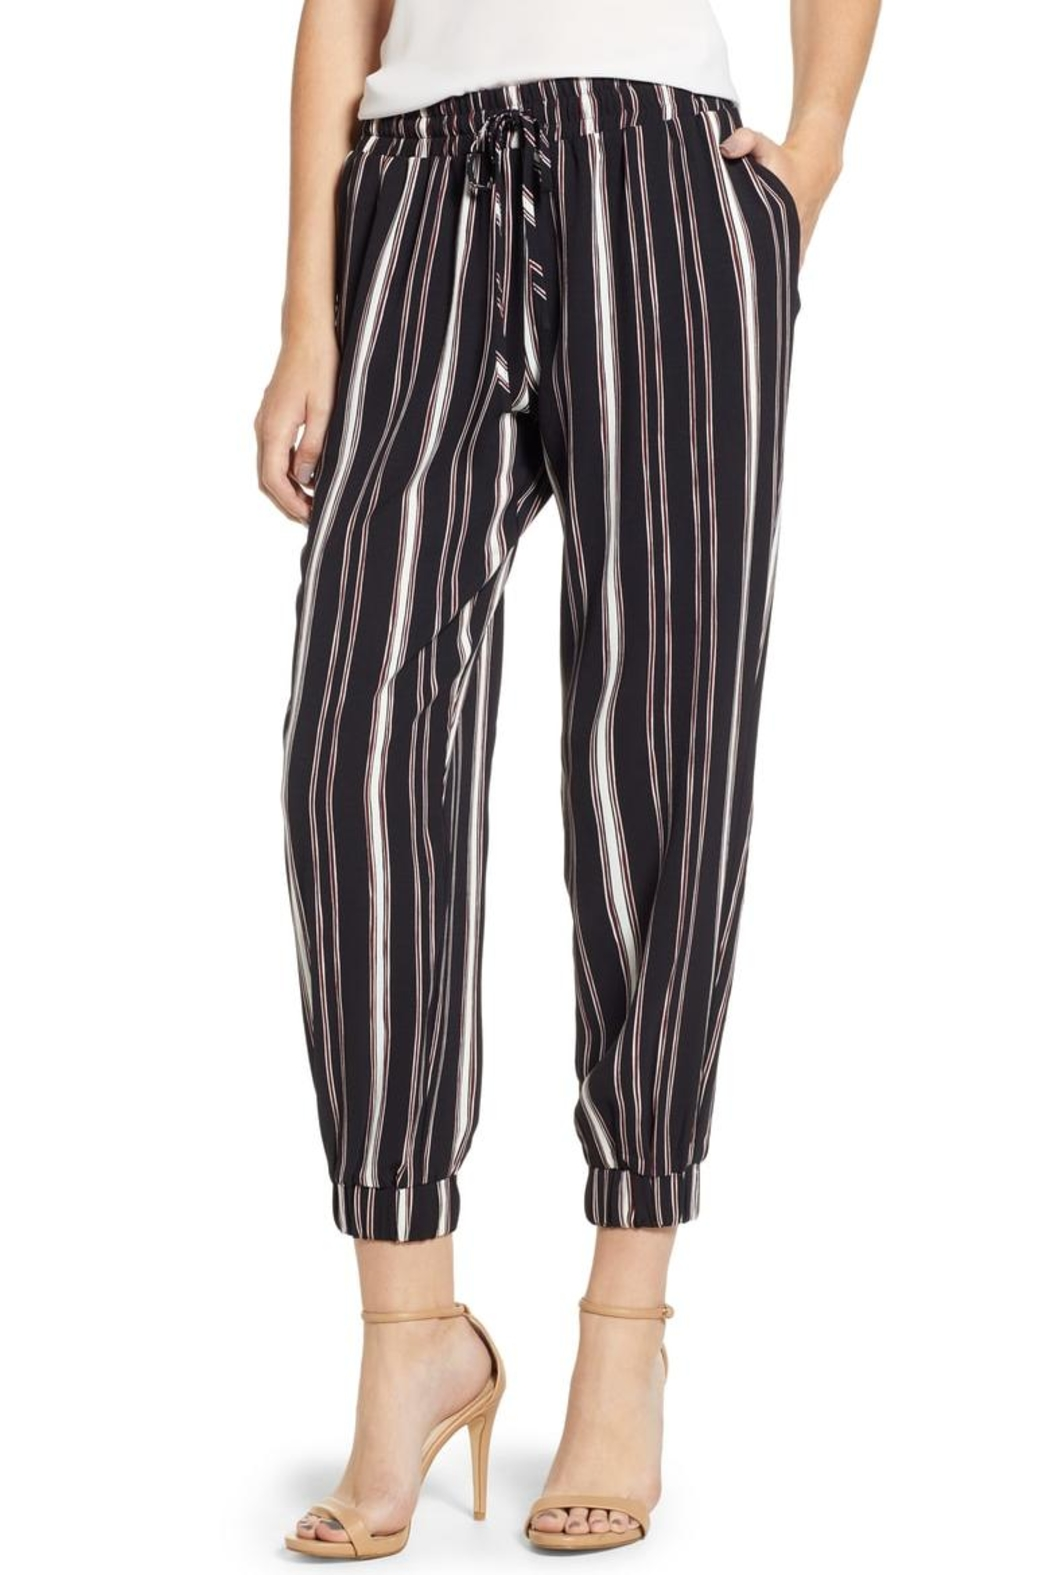 Bishop + Young Stripe Jogger Pants - Front Cropped Image